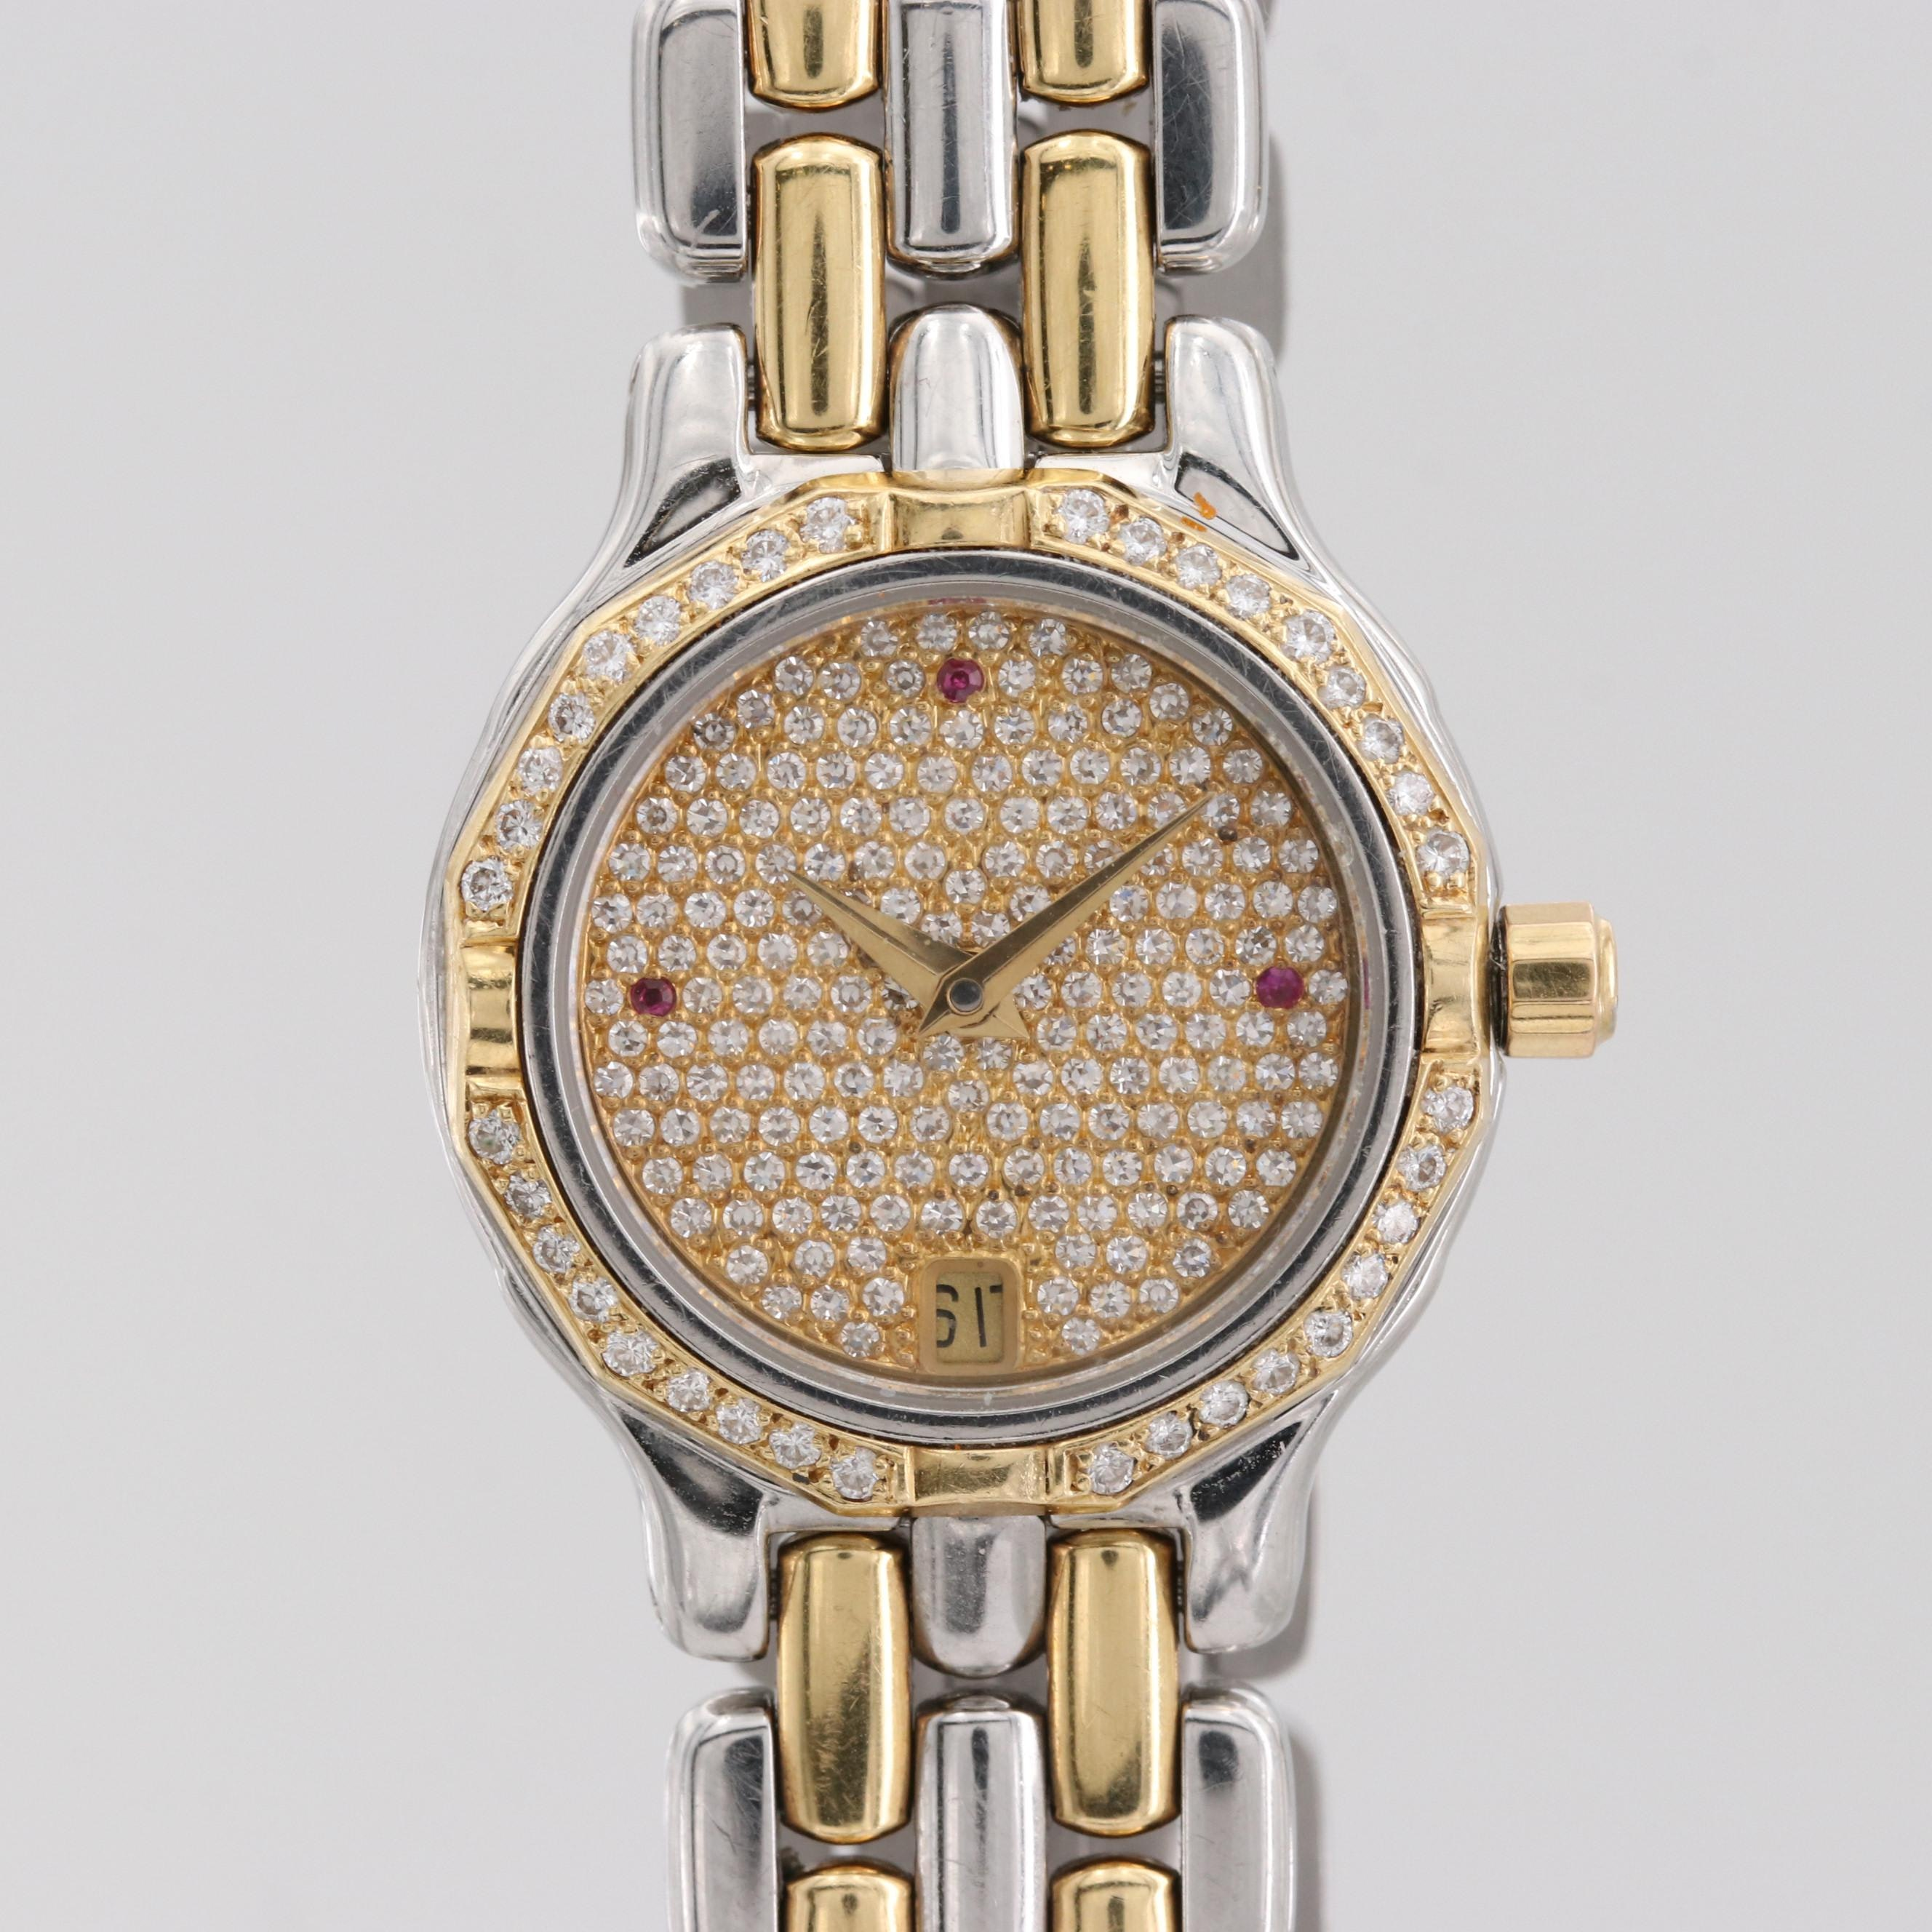 Cyma 18K Yellow Gold Quartz Wristwatch With 1.14 CTW Diamond Bezel and Dial